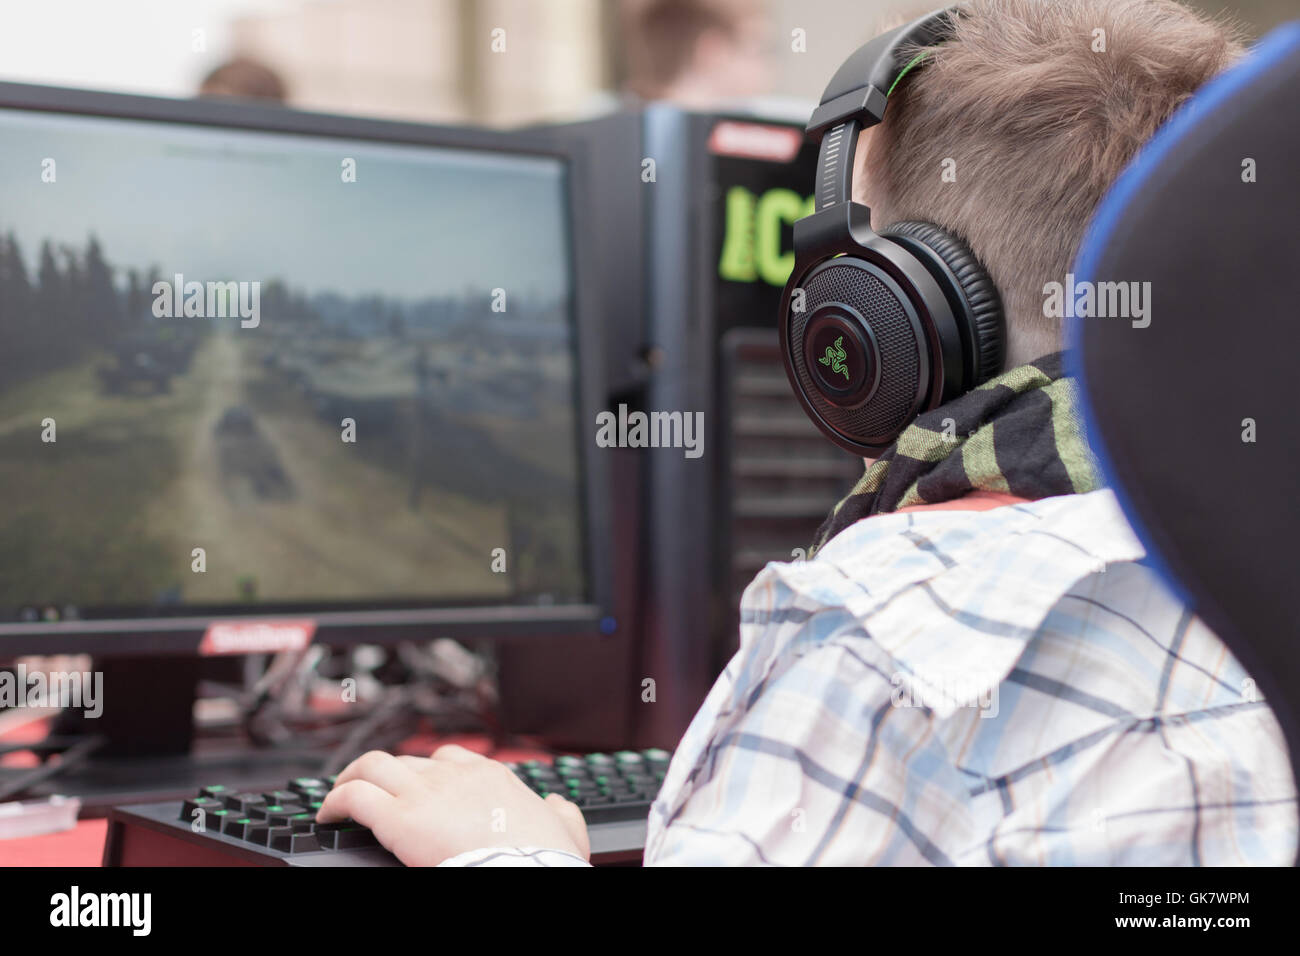 BRNO, CZECH REPUBLIC - APRIL 30, 2016: Young man sits on gaming chair and plays game on PC at Animefest, anime convention - Stock Image